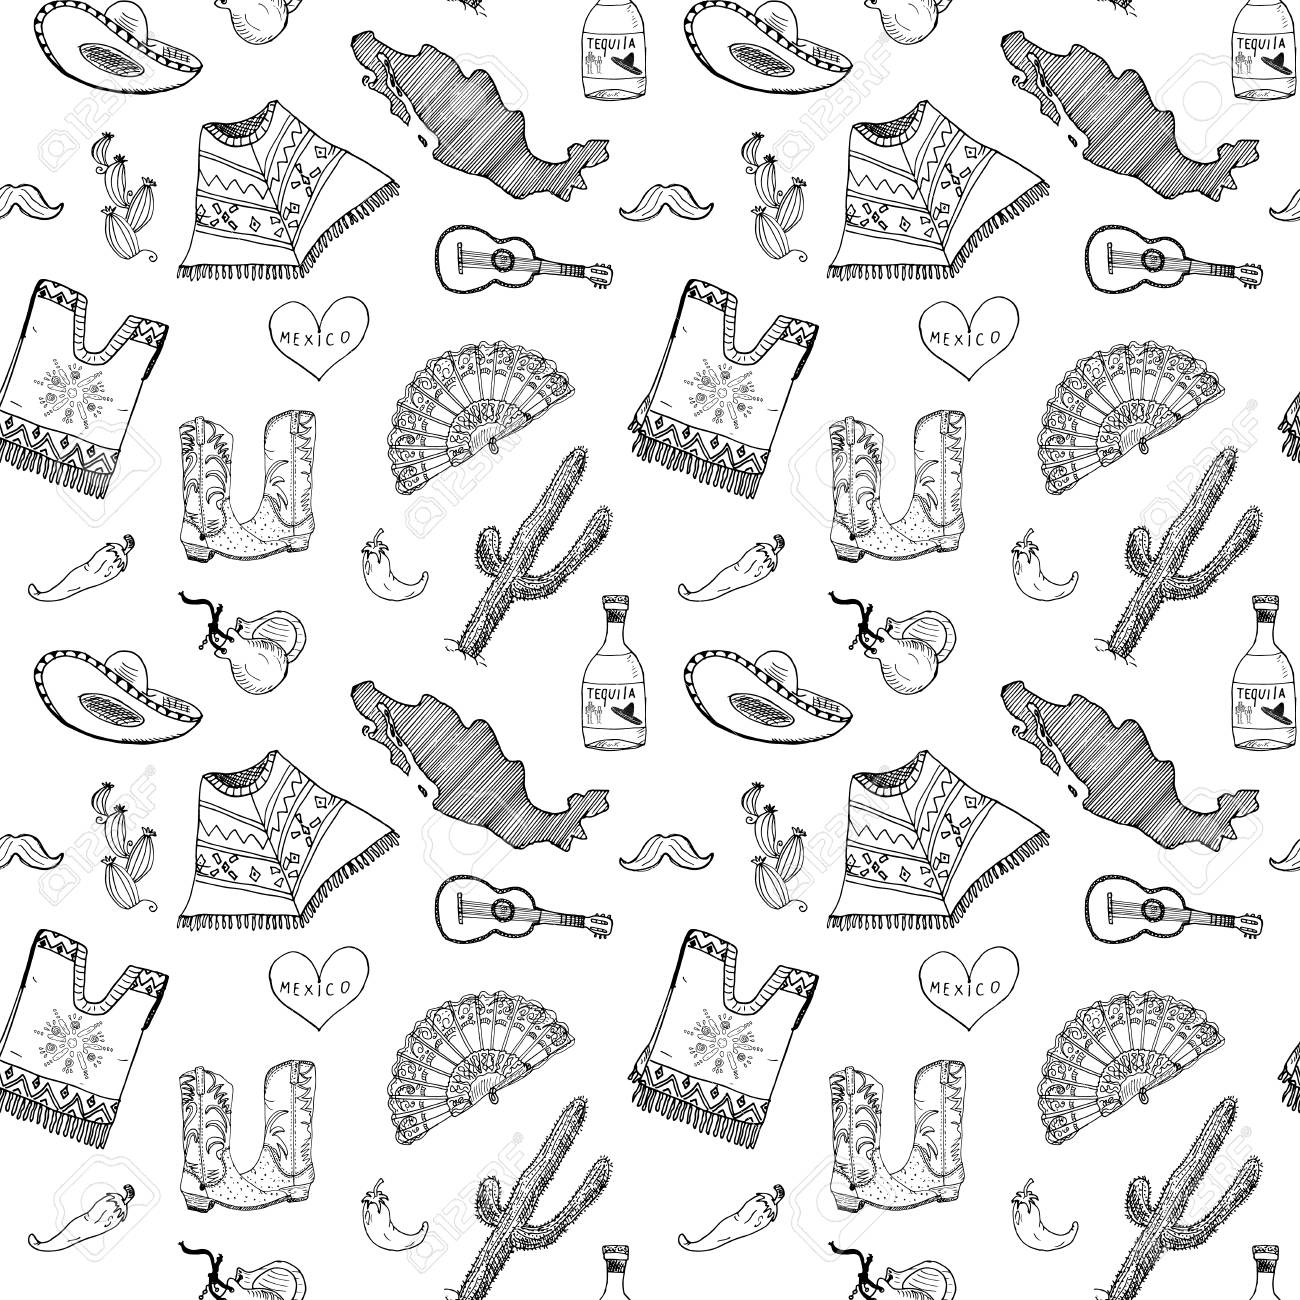 Mexico Seamless Pattern Doodle Elements ce4d86bfb14